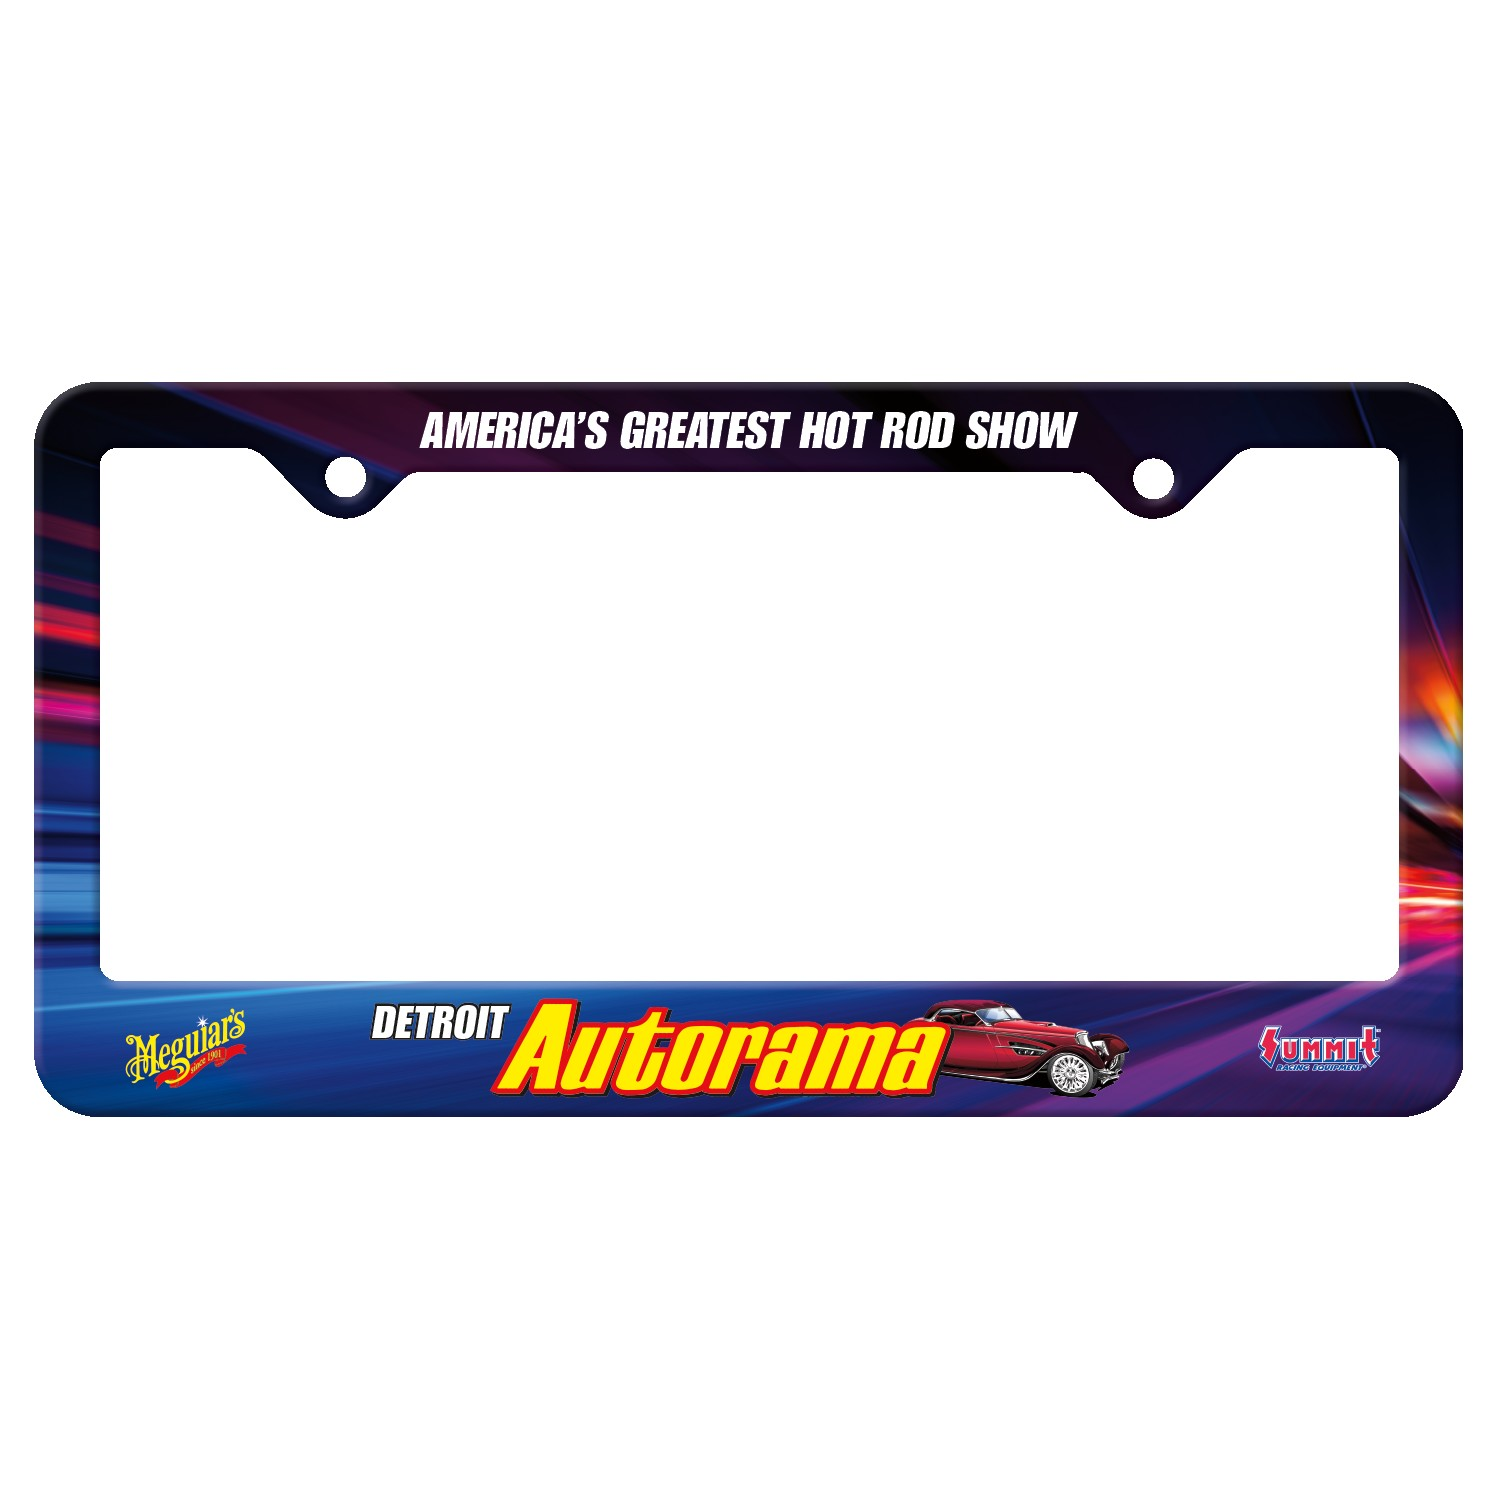 765529303-183 - Auto License Frame Full Color w/ 2 Holes & Large Bottom Straight Panel - thumbnail